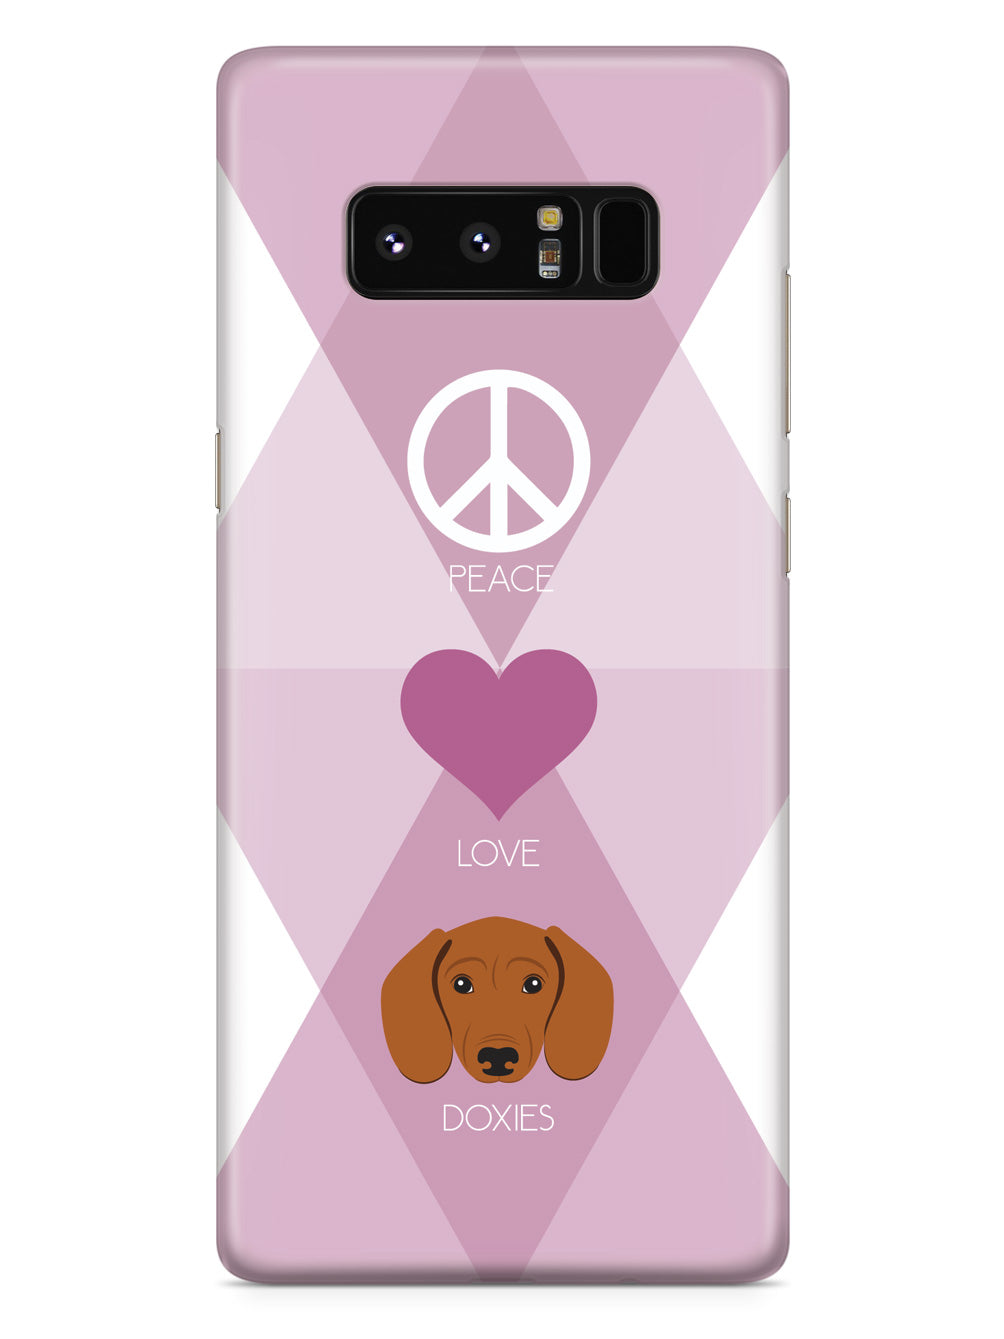 Peace, Love & Doxies Case